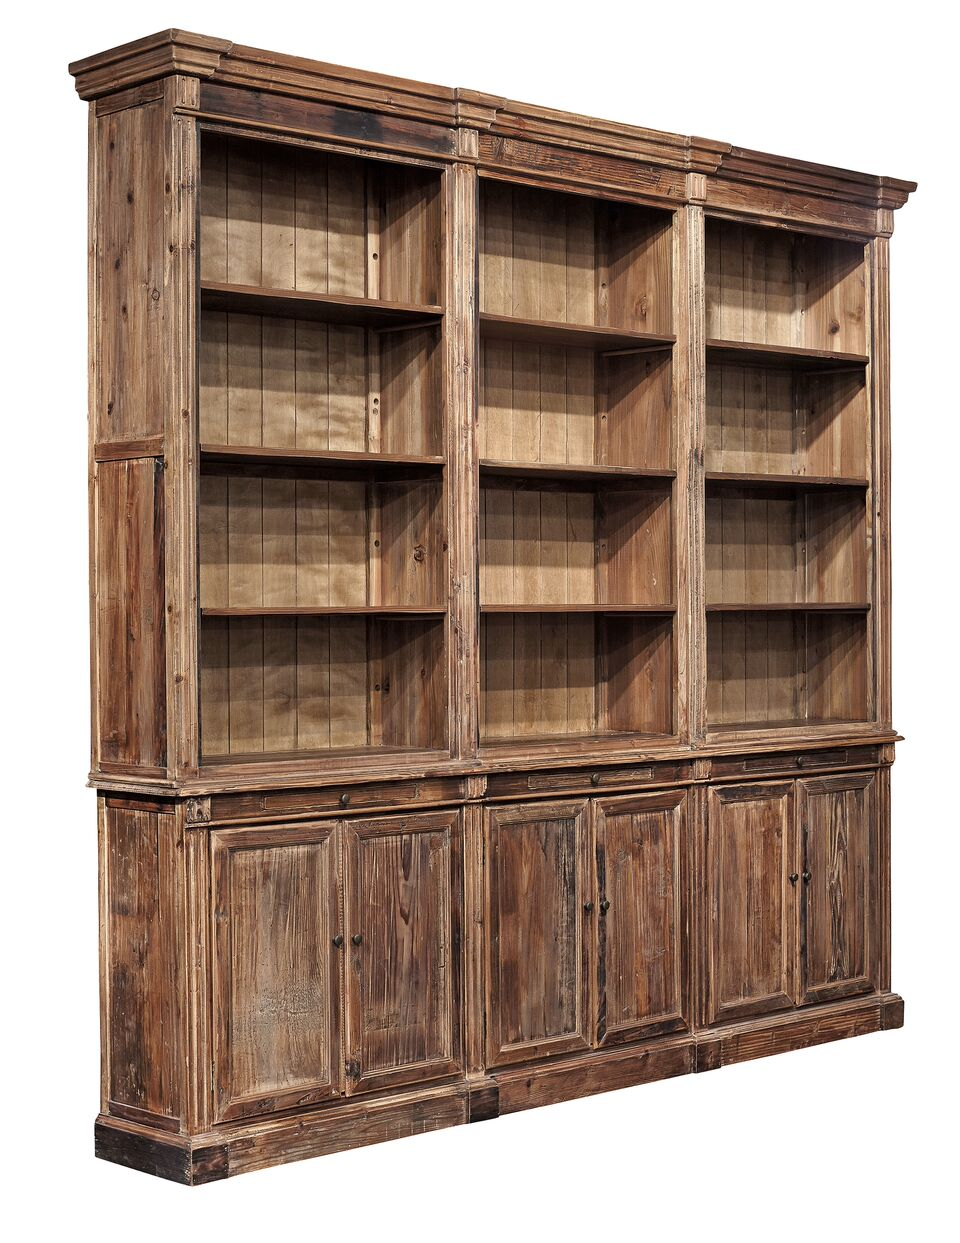 Furniture Classics Old Fir Grand Bookcase 72074   Curios And More ...